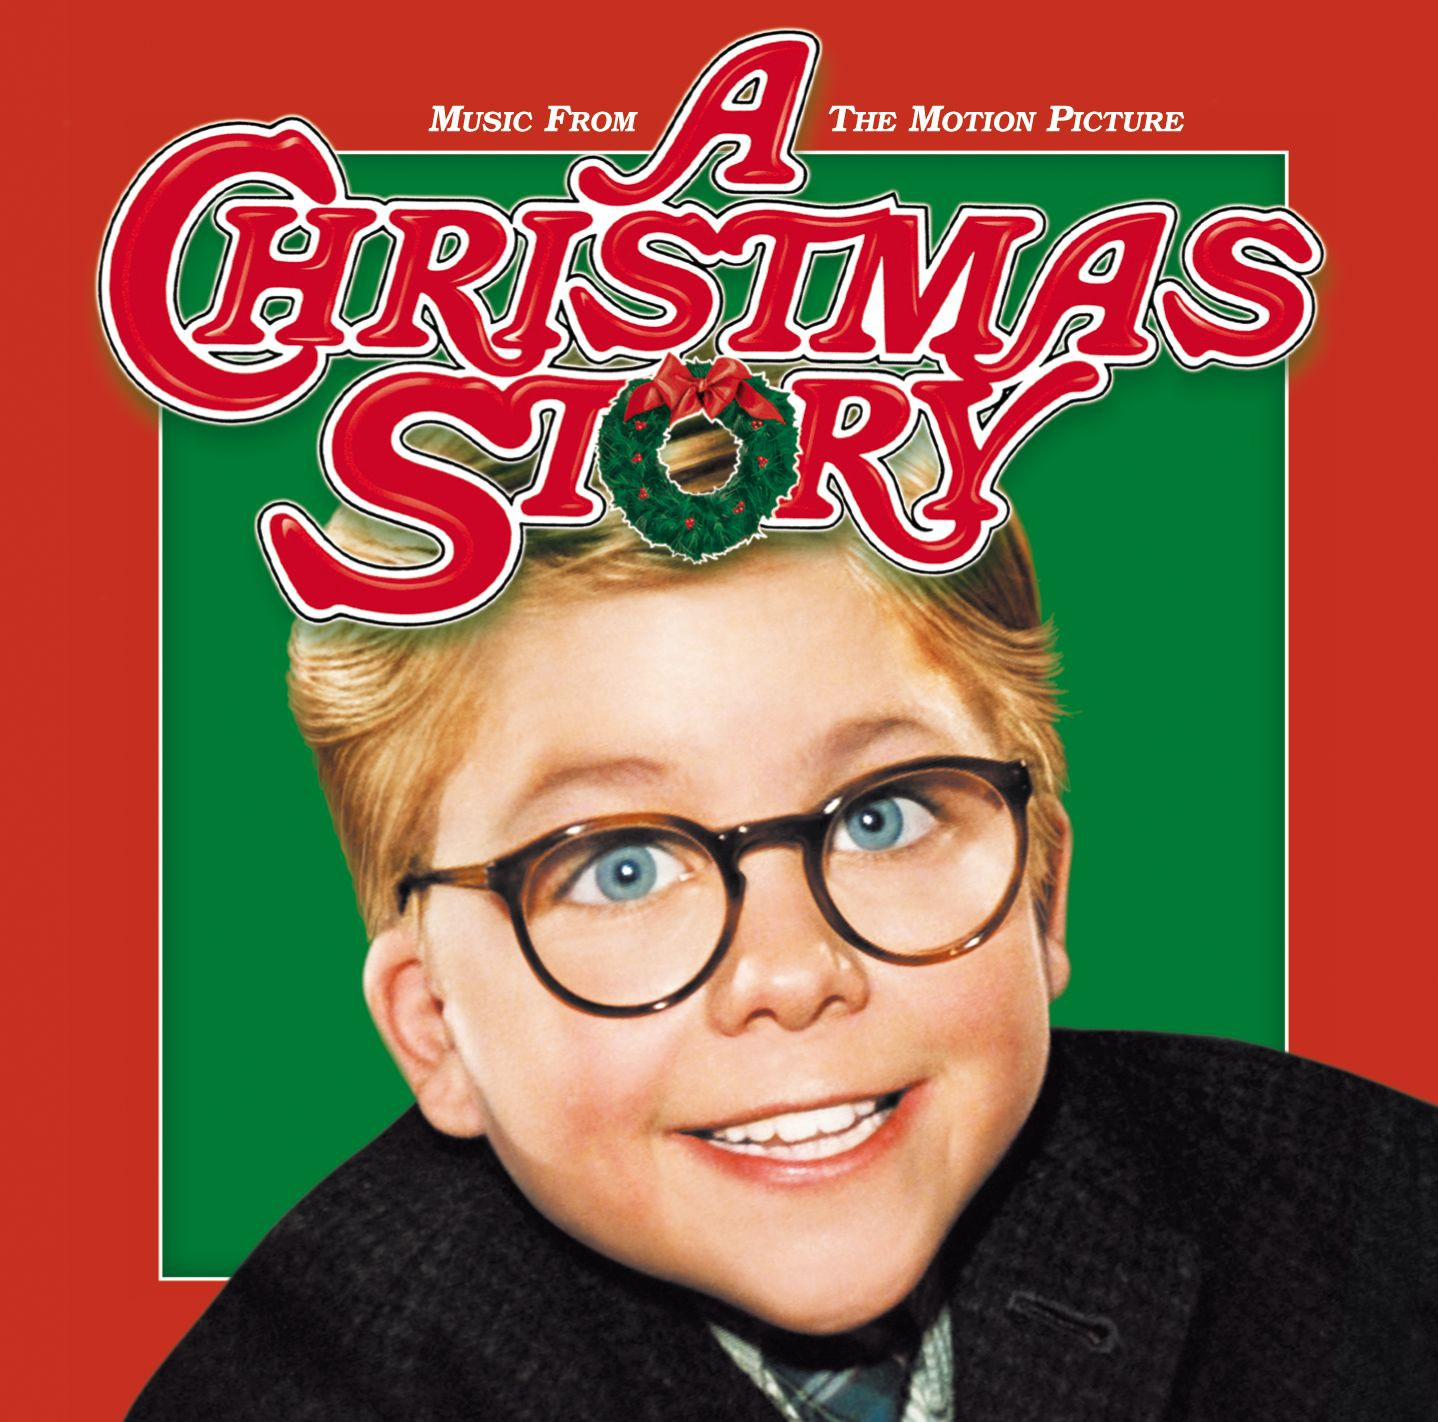 3 Marketing Lessons from A Christmas Story – redpepper has ideas